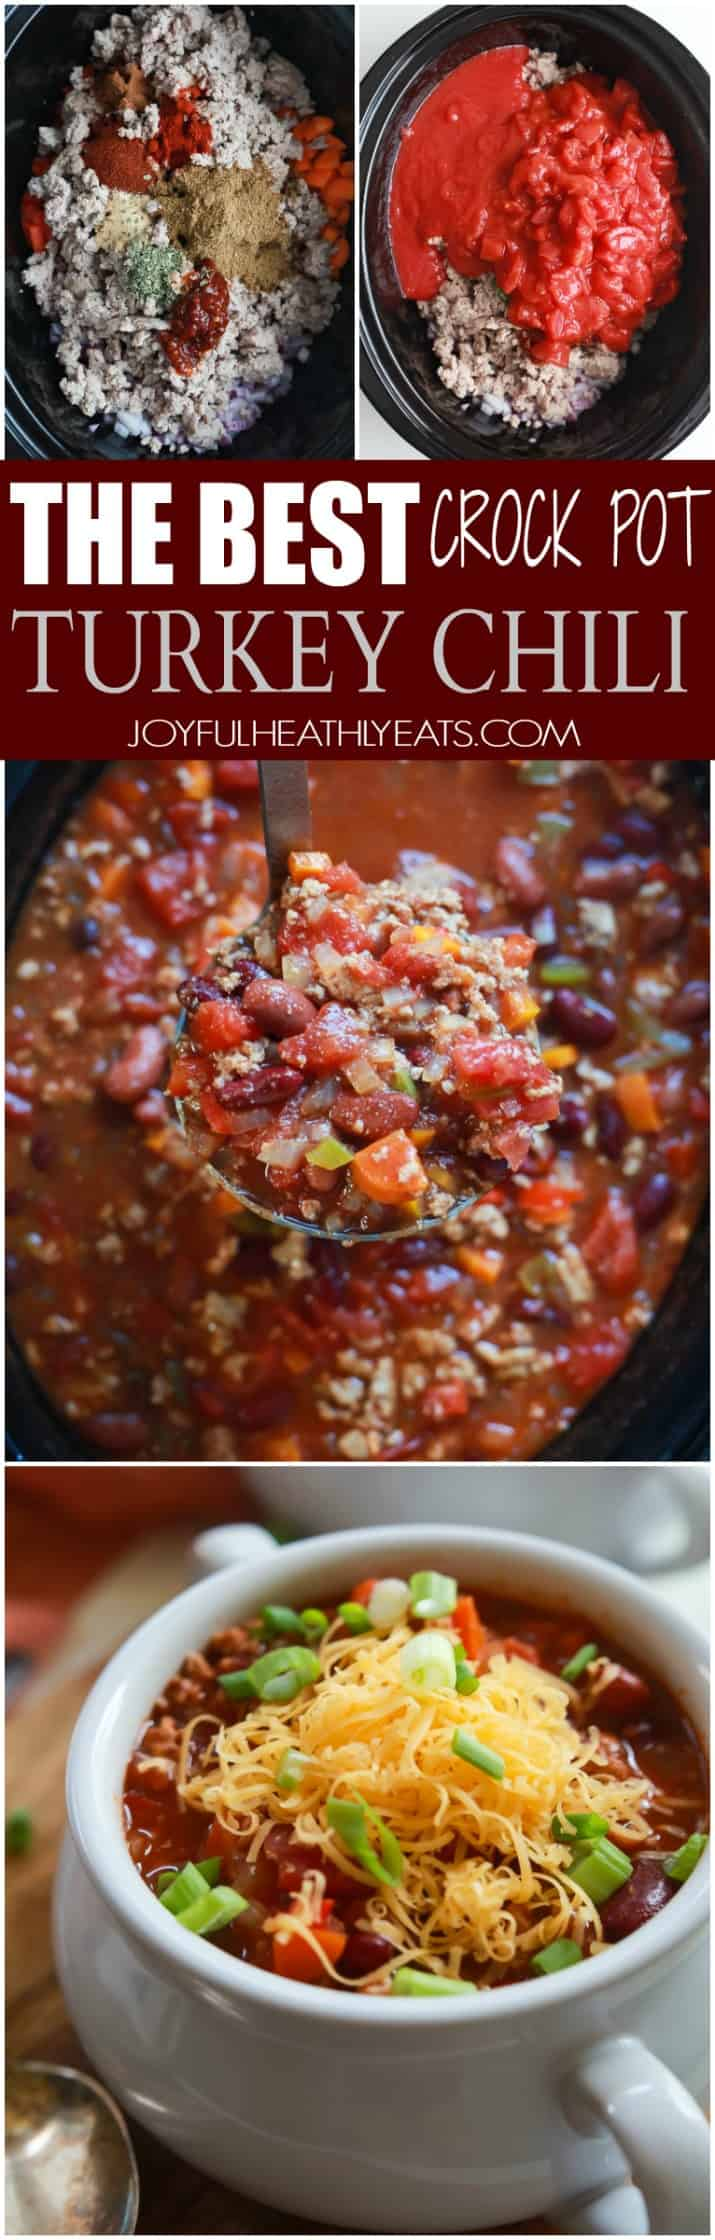 The BEST Crock Pot Chili Recipe